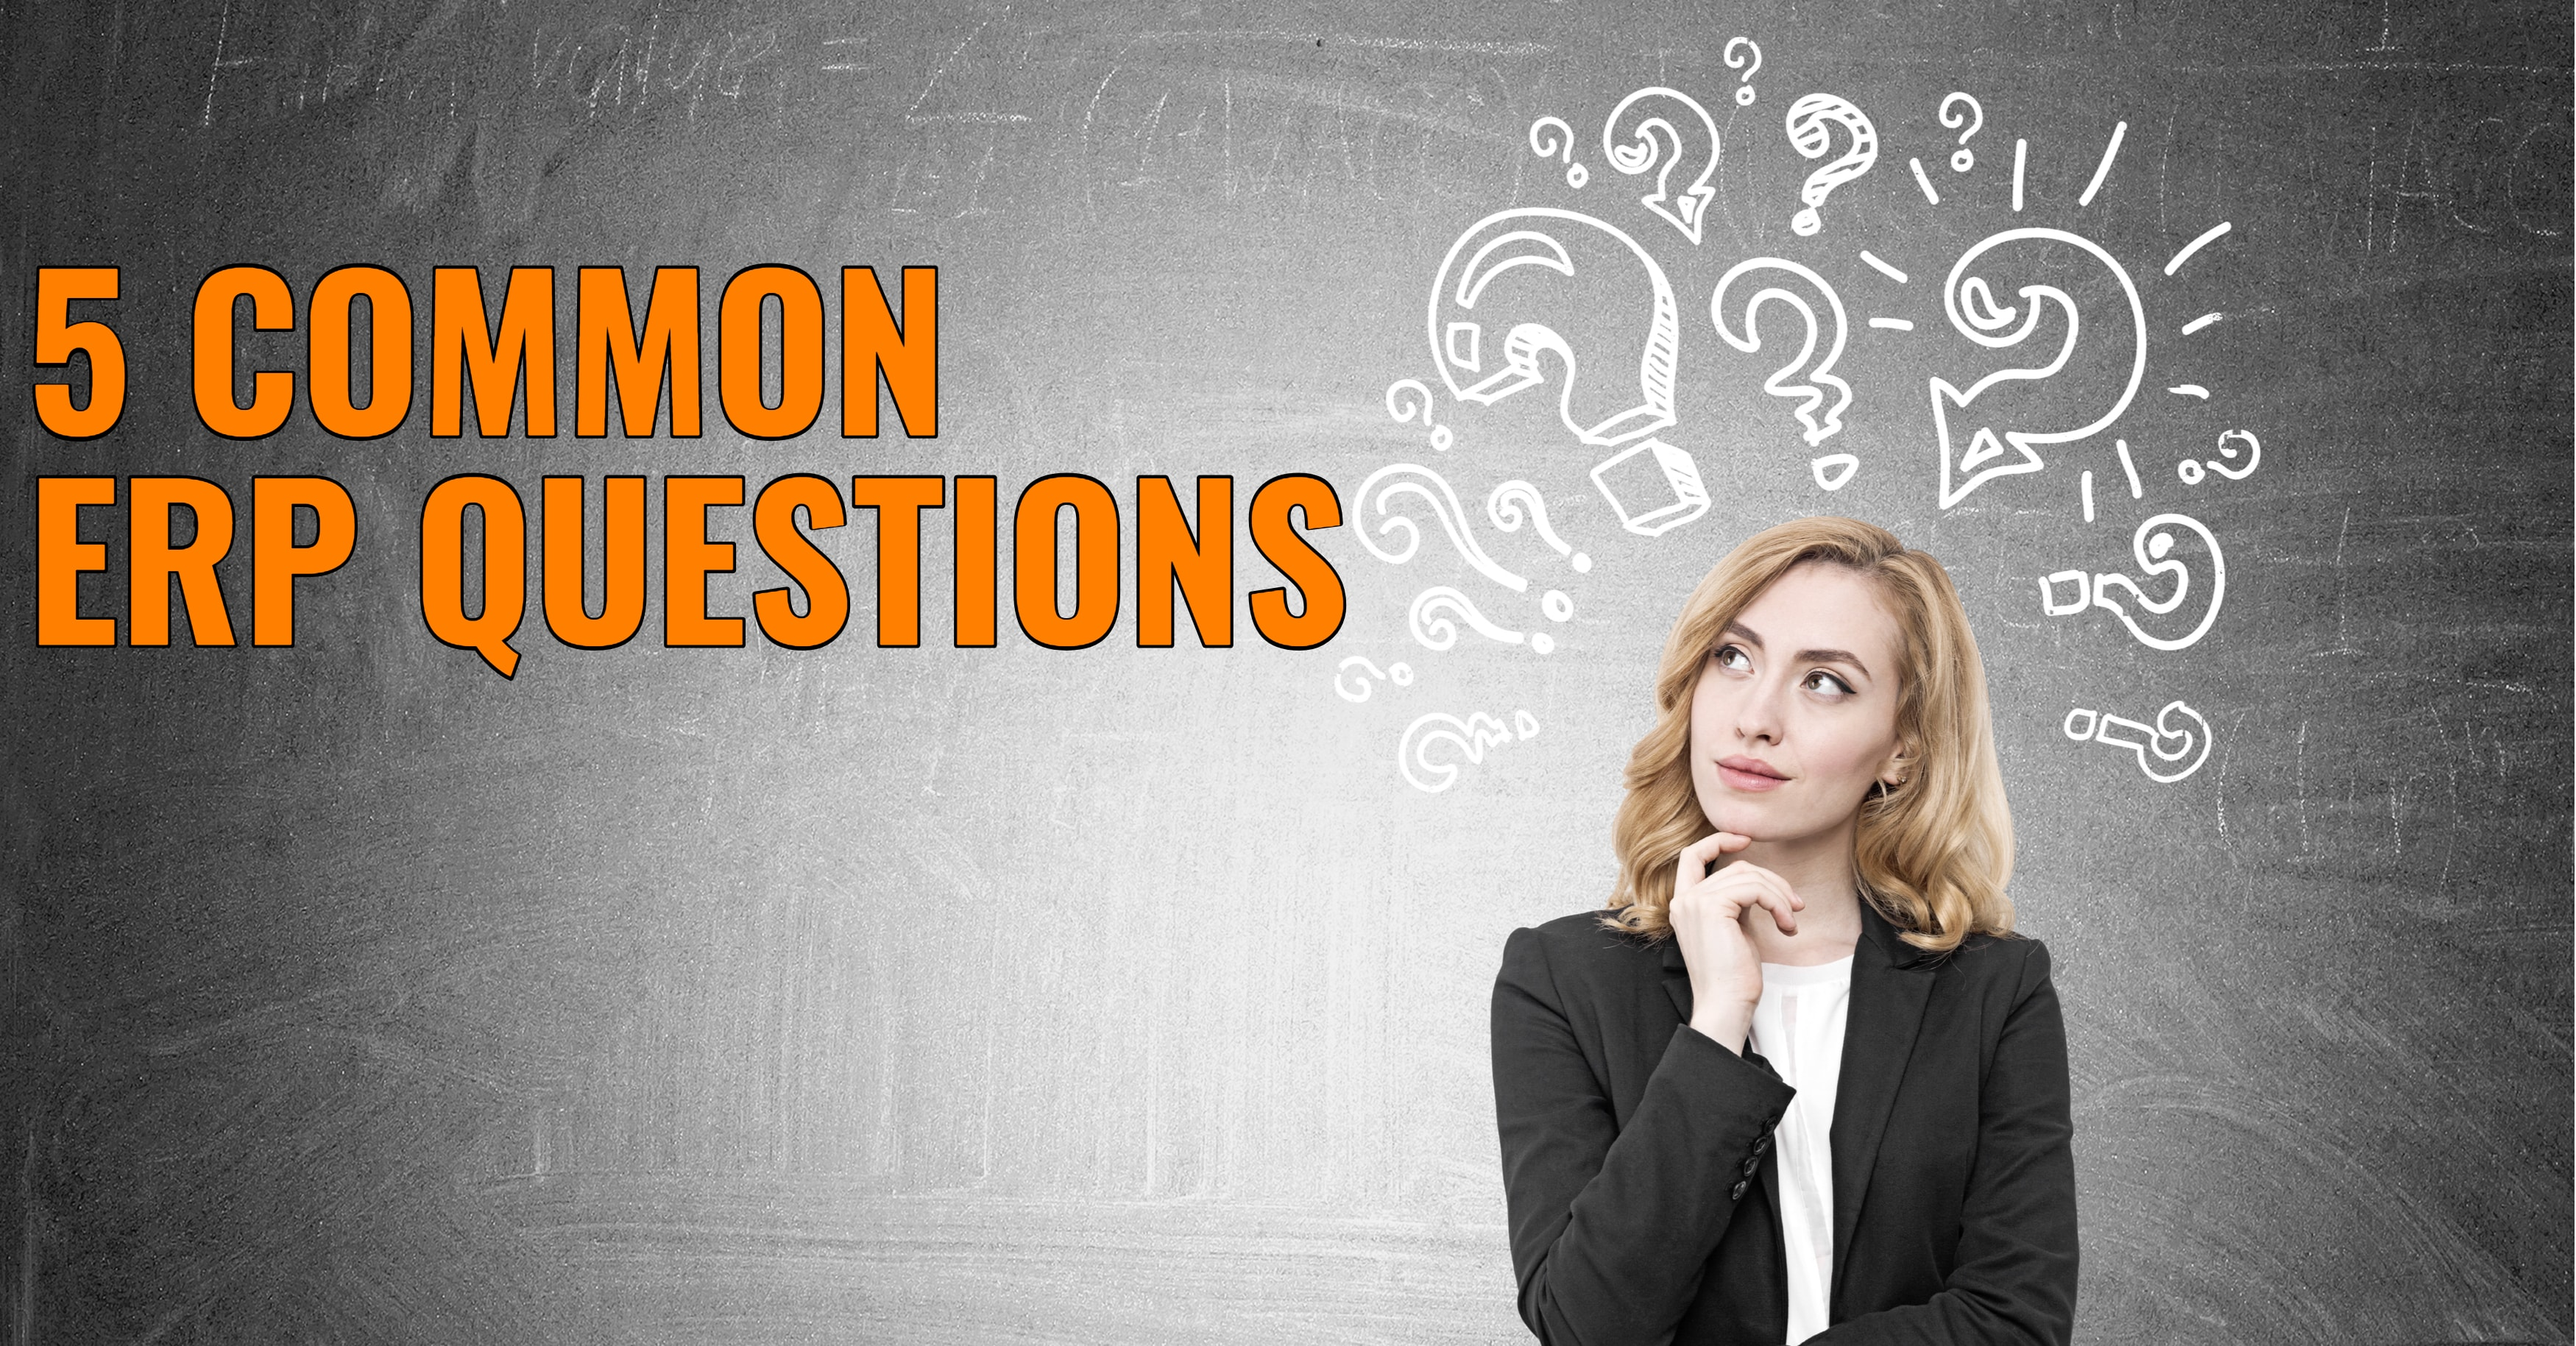 5 Common ERP Questions